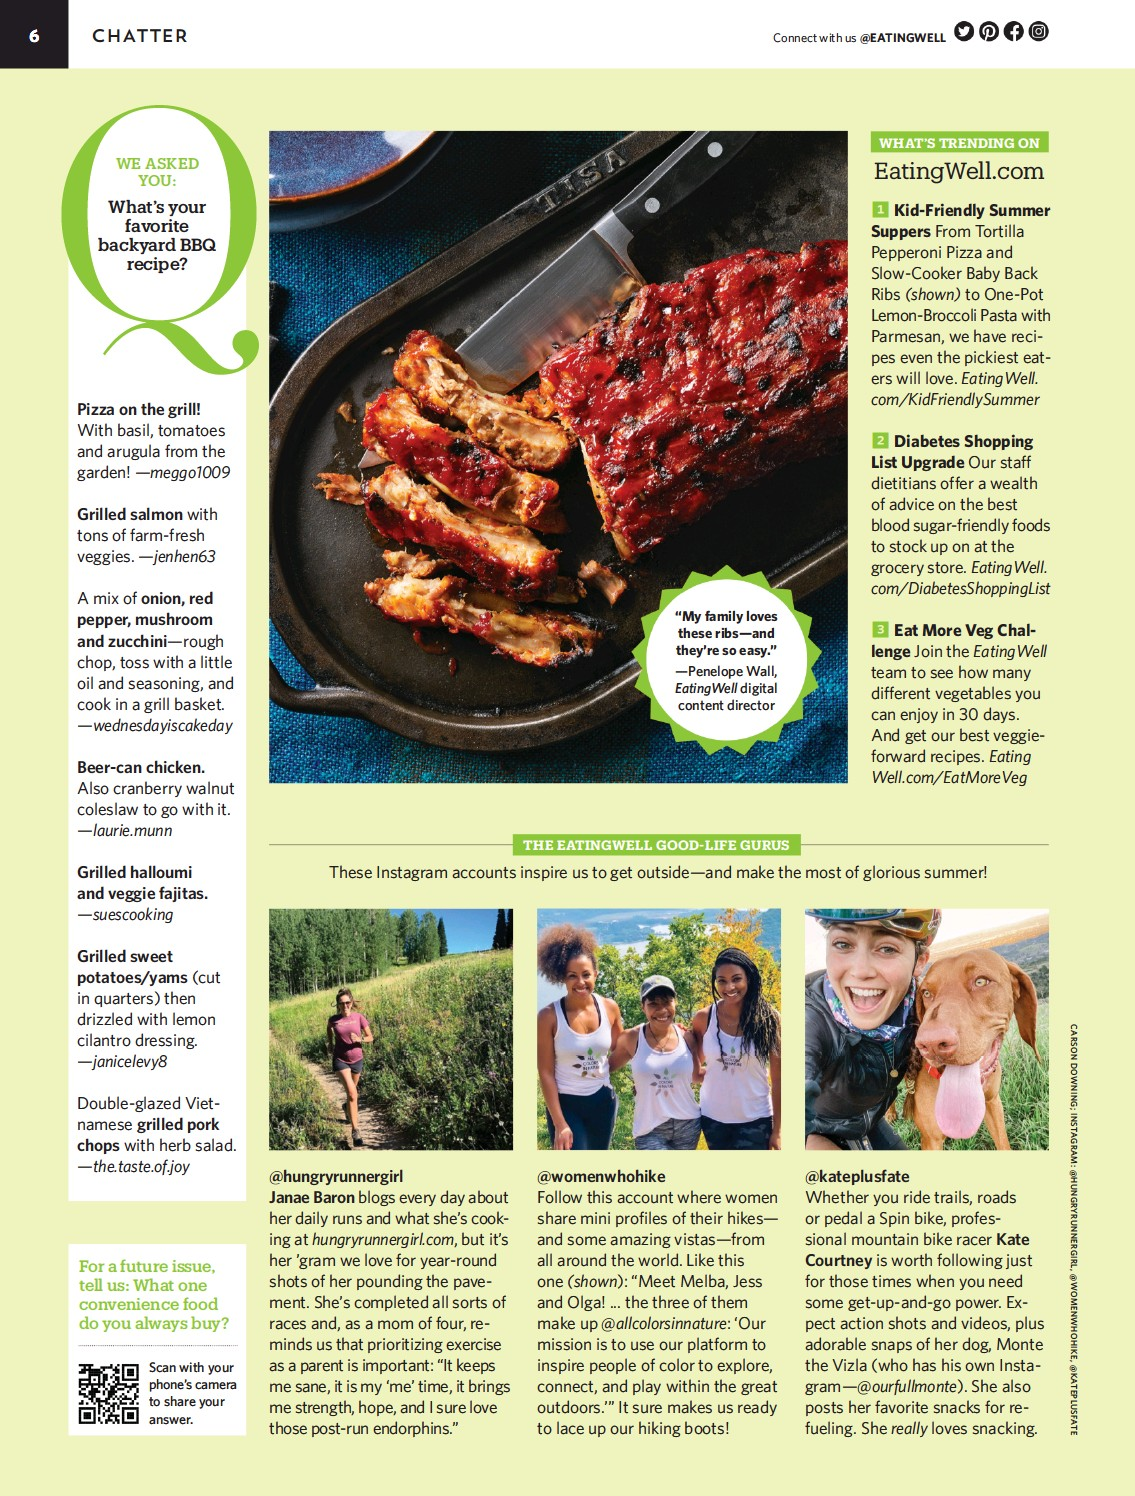 """??  ?? """"My family loves these ribs—and they're so easy."""" —Penelope Wall, Eatingwell digital content director"""